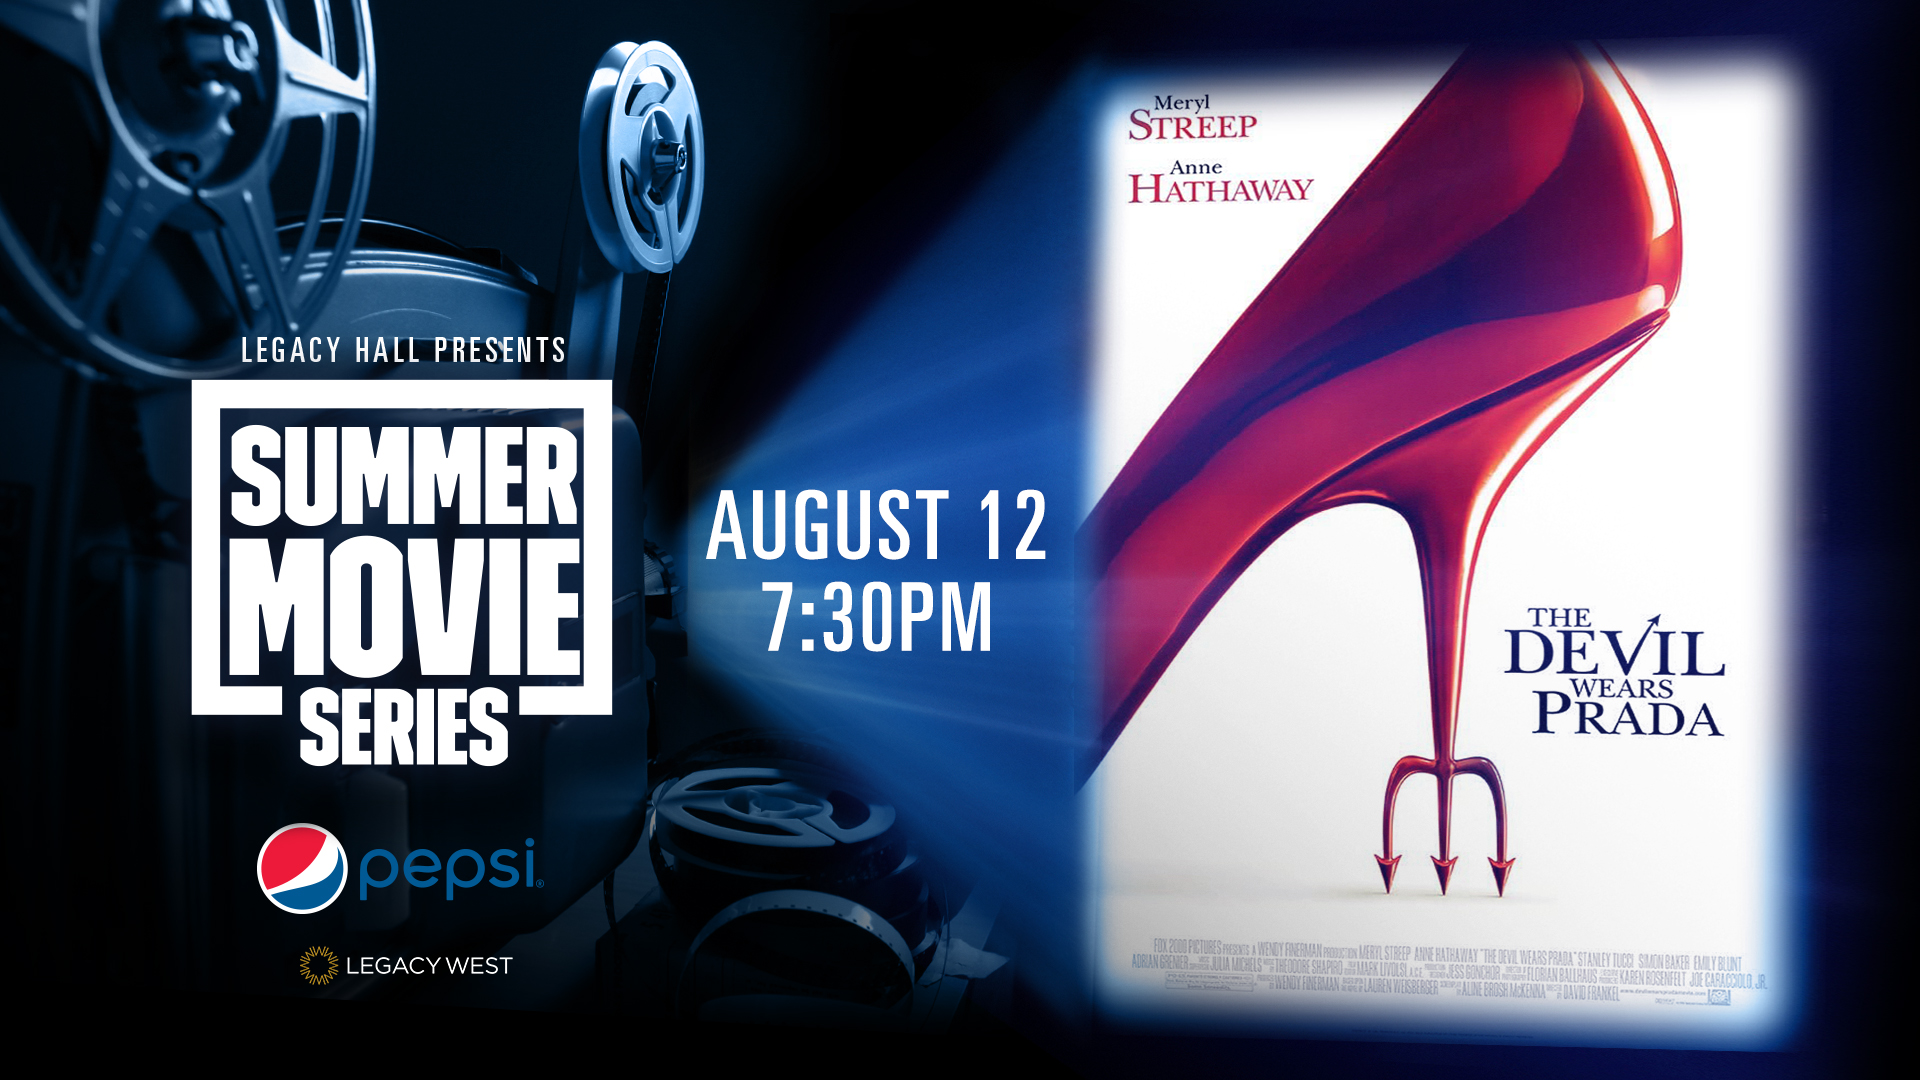 Promo image of Pepsi Summer Movie Series: The Devil Wears Prada